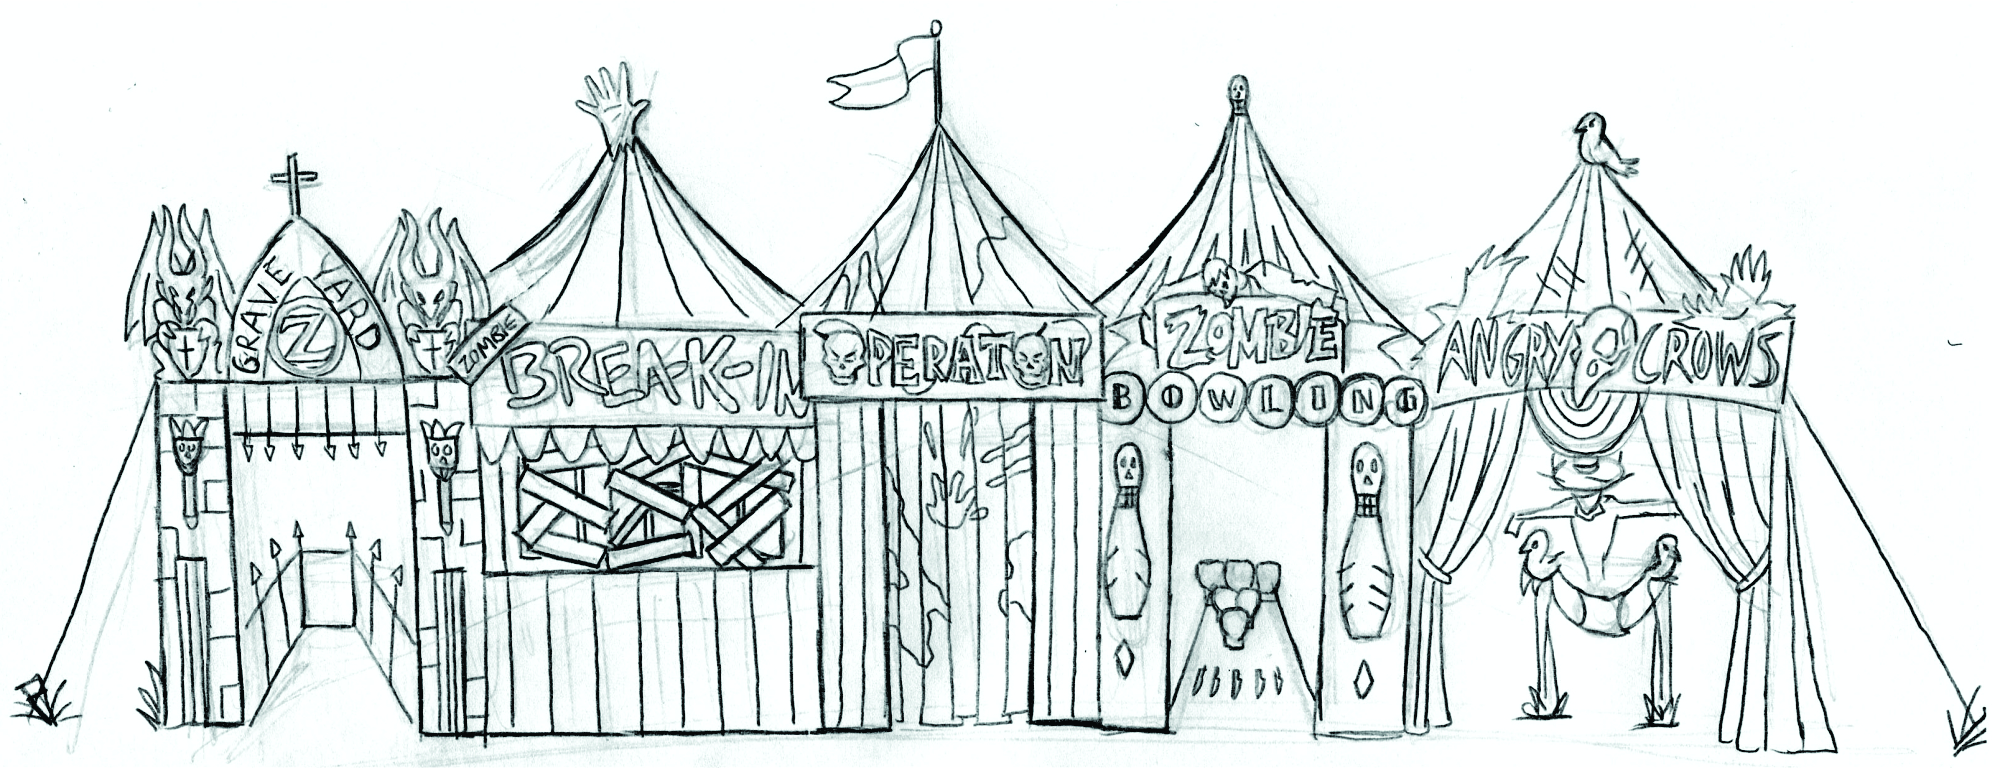 Carnival Games ⋆ Scare Factory